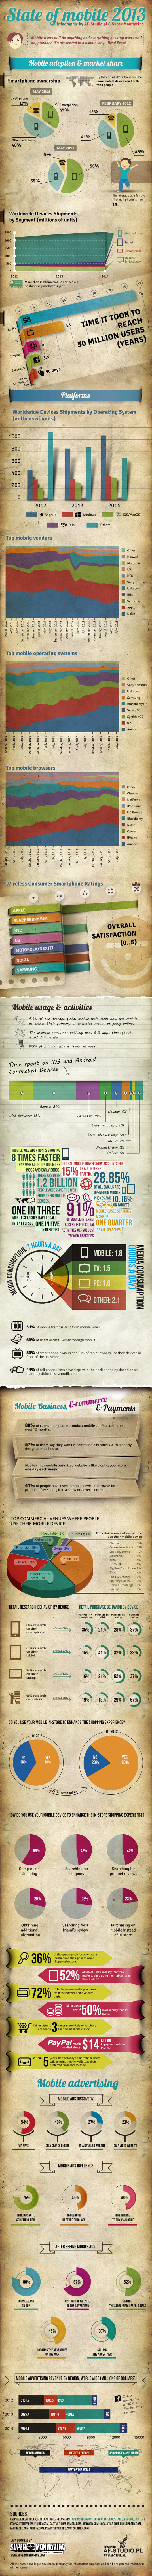 Infographic-2013-Mobile-Growth-Statistics-Medium